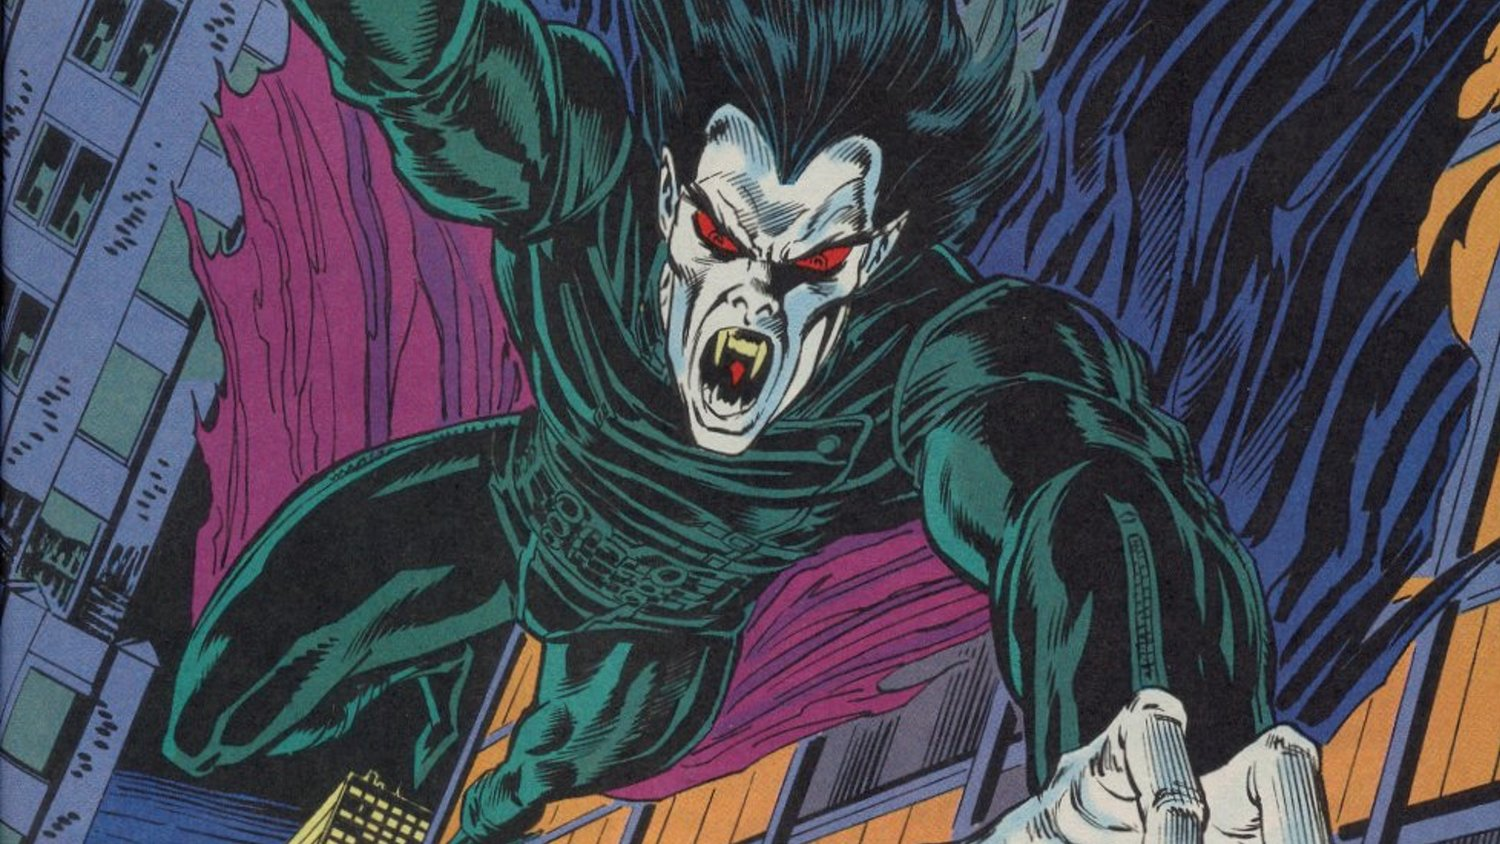 Morbius Set Photos >> Jared Leto Shares First Photo Of Himself On The Set Of